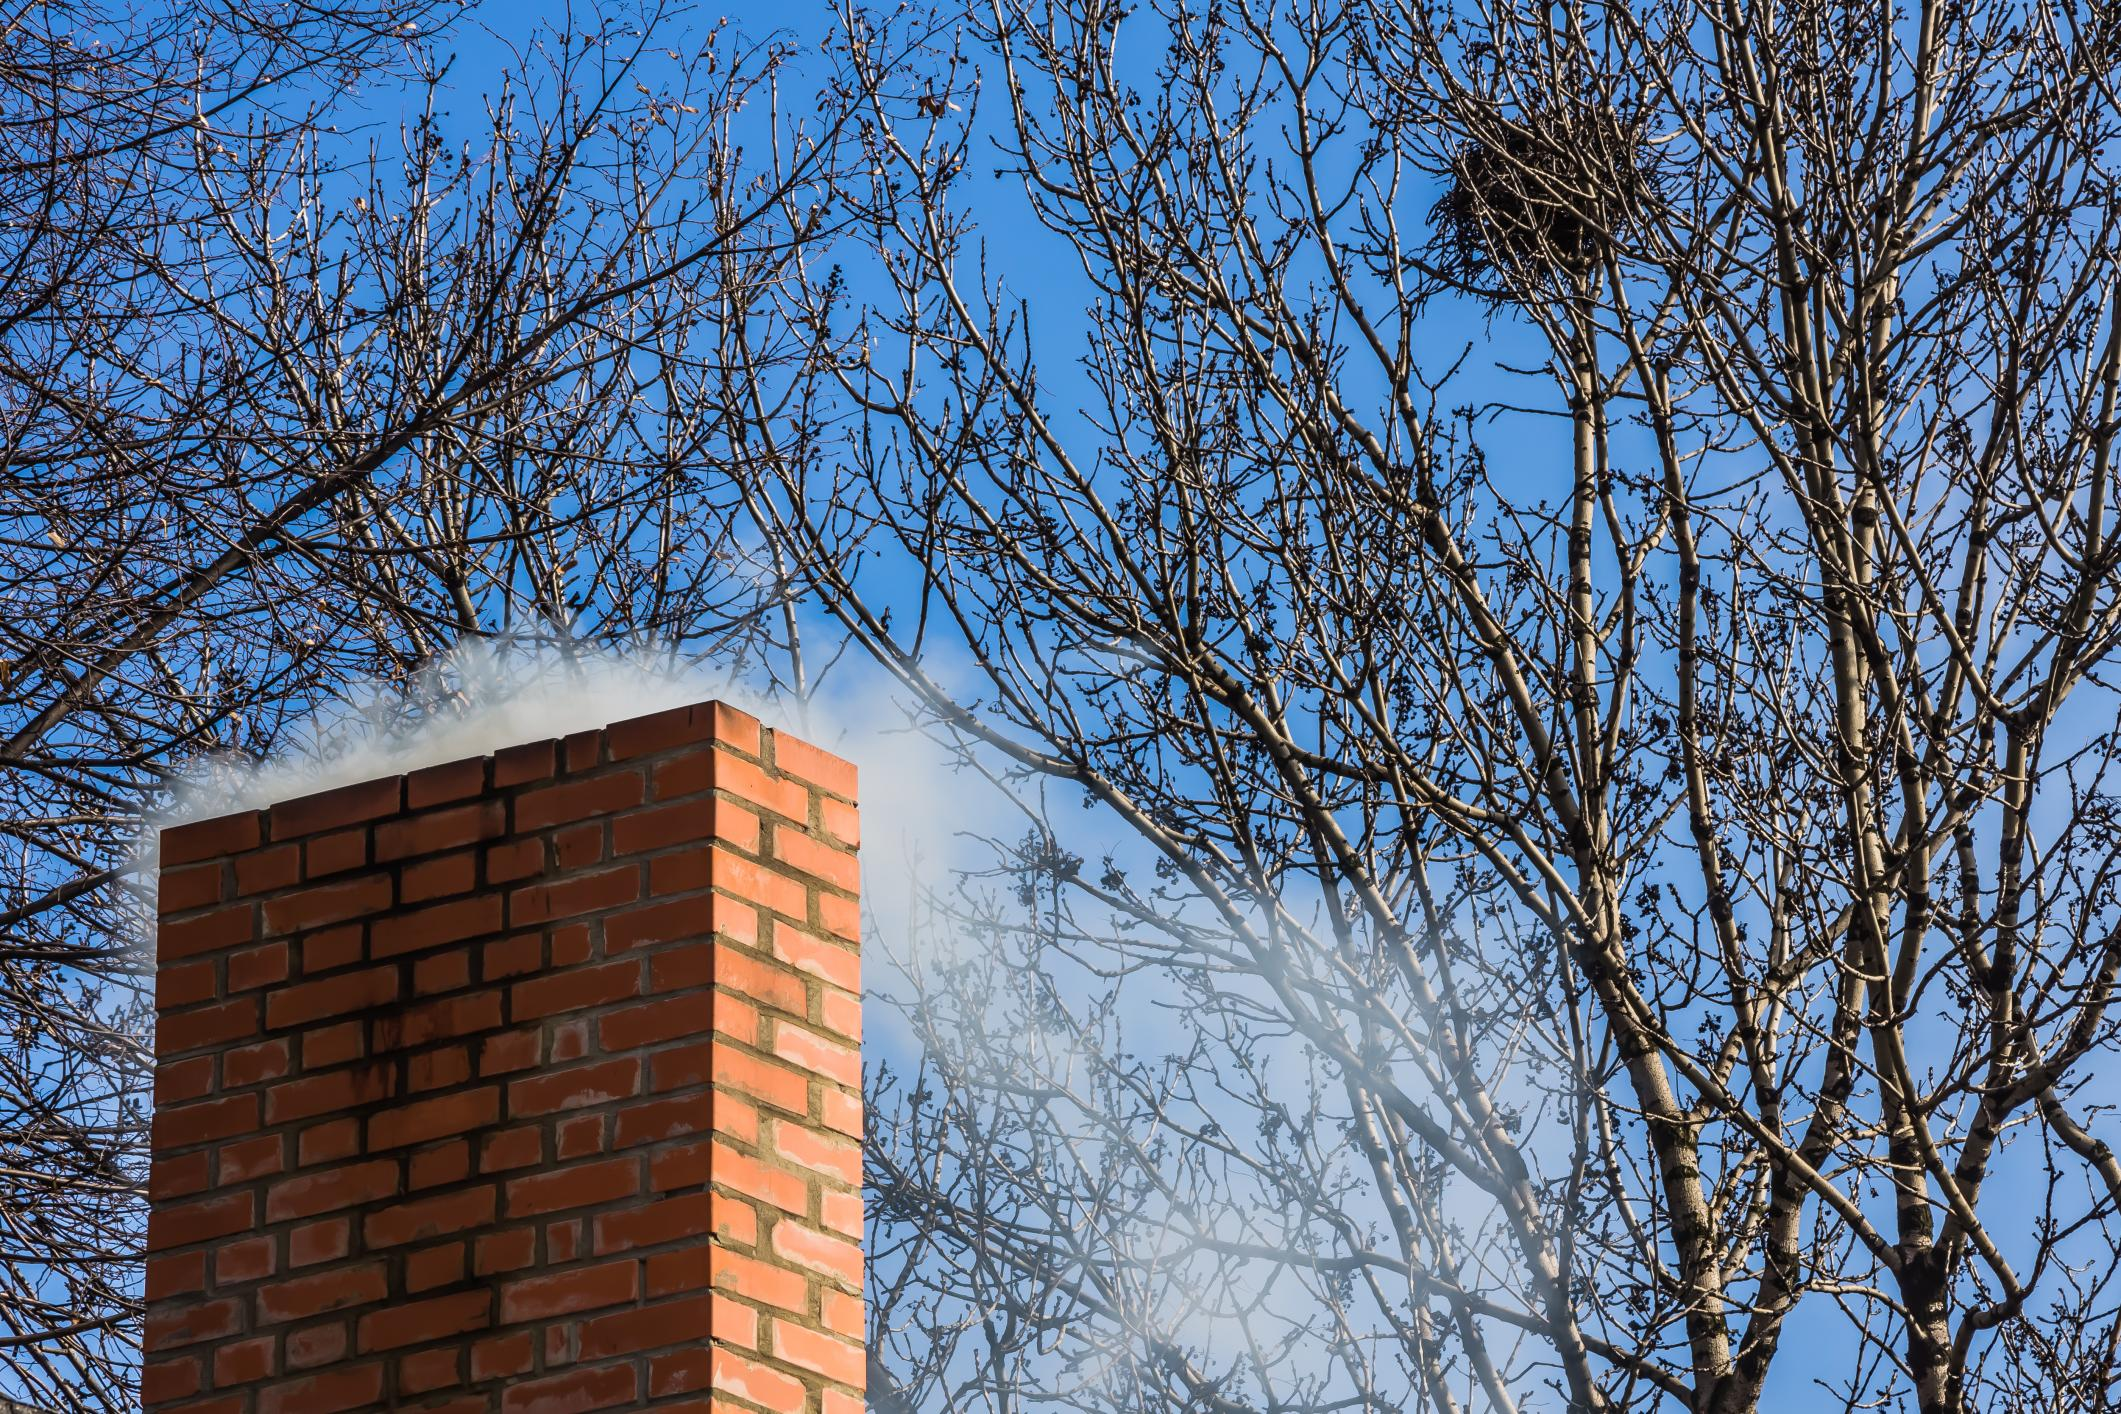 This is a picture of a brick chimney and fireplace repairs.